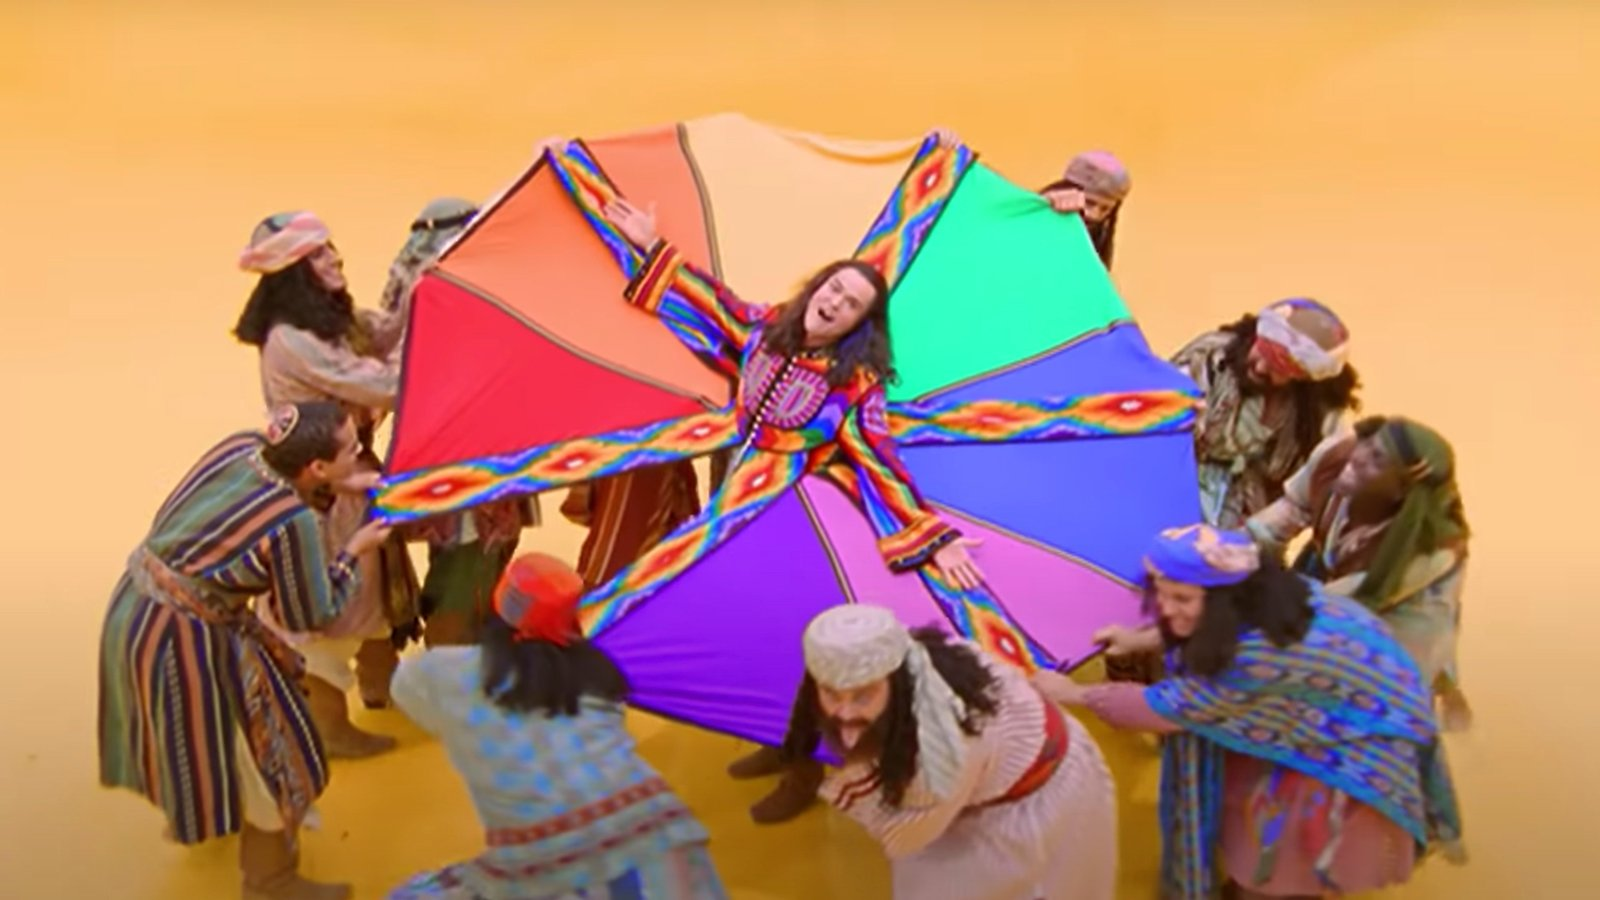 'Give Me My Colored Coat': Donny Osmond performs wedding in amazing technicolor dreamcoat